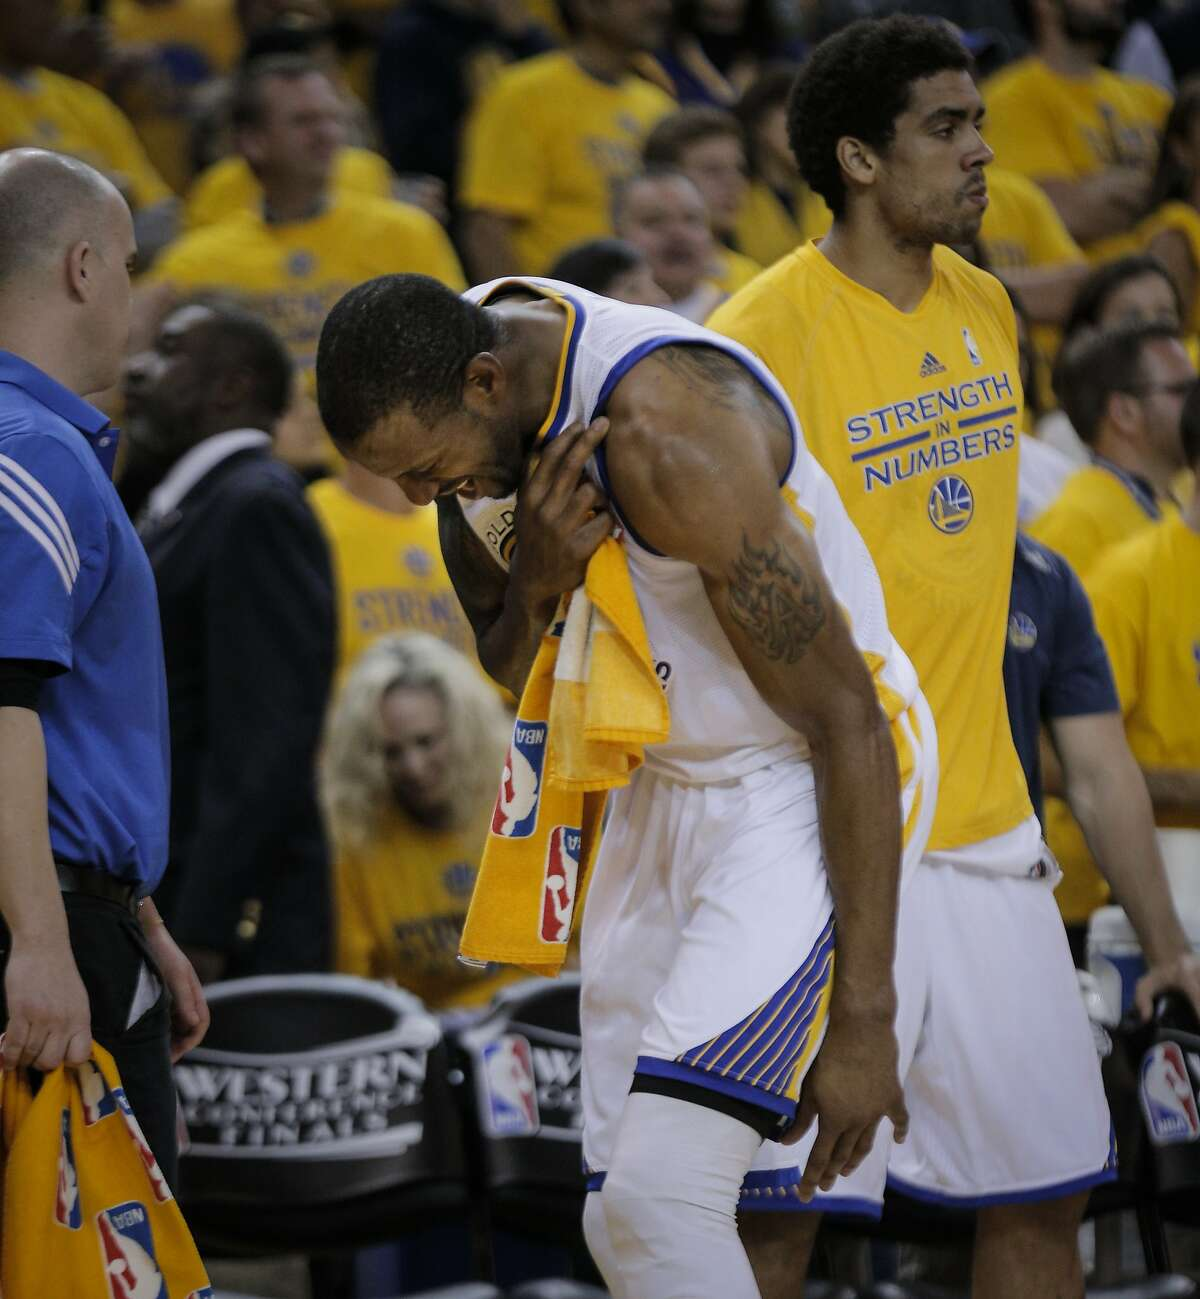 Golden State Warriors' Andre Iguodala holds his shoulder after being injured in the fourth period during Game 5 of the Western Conference Finals on Wednesday, May 27, 2015 in Oakland, Calif.